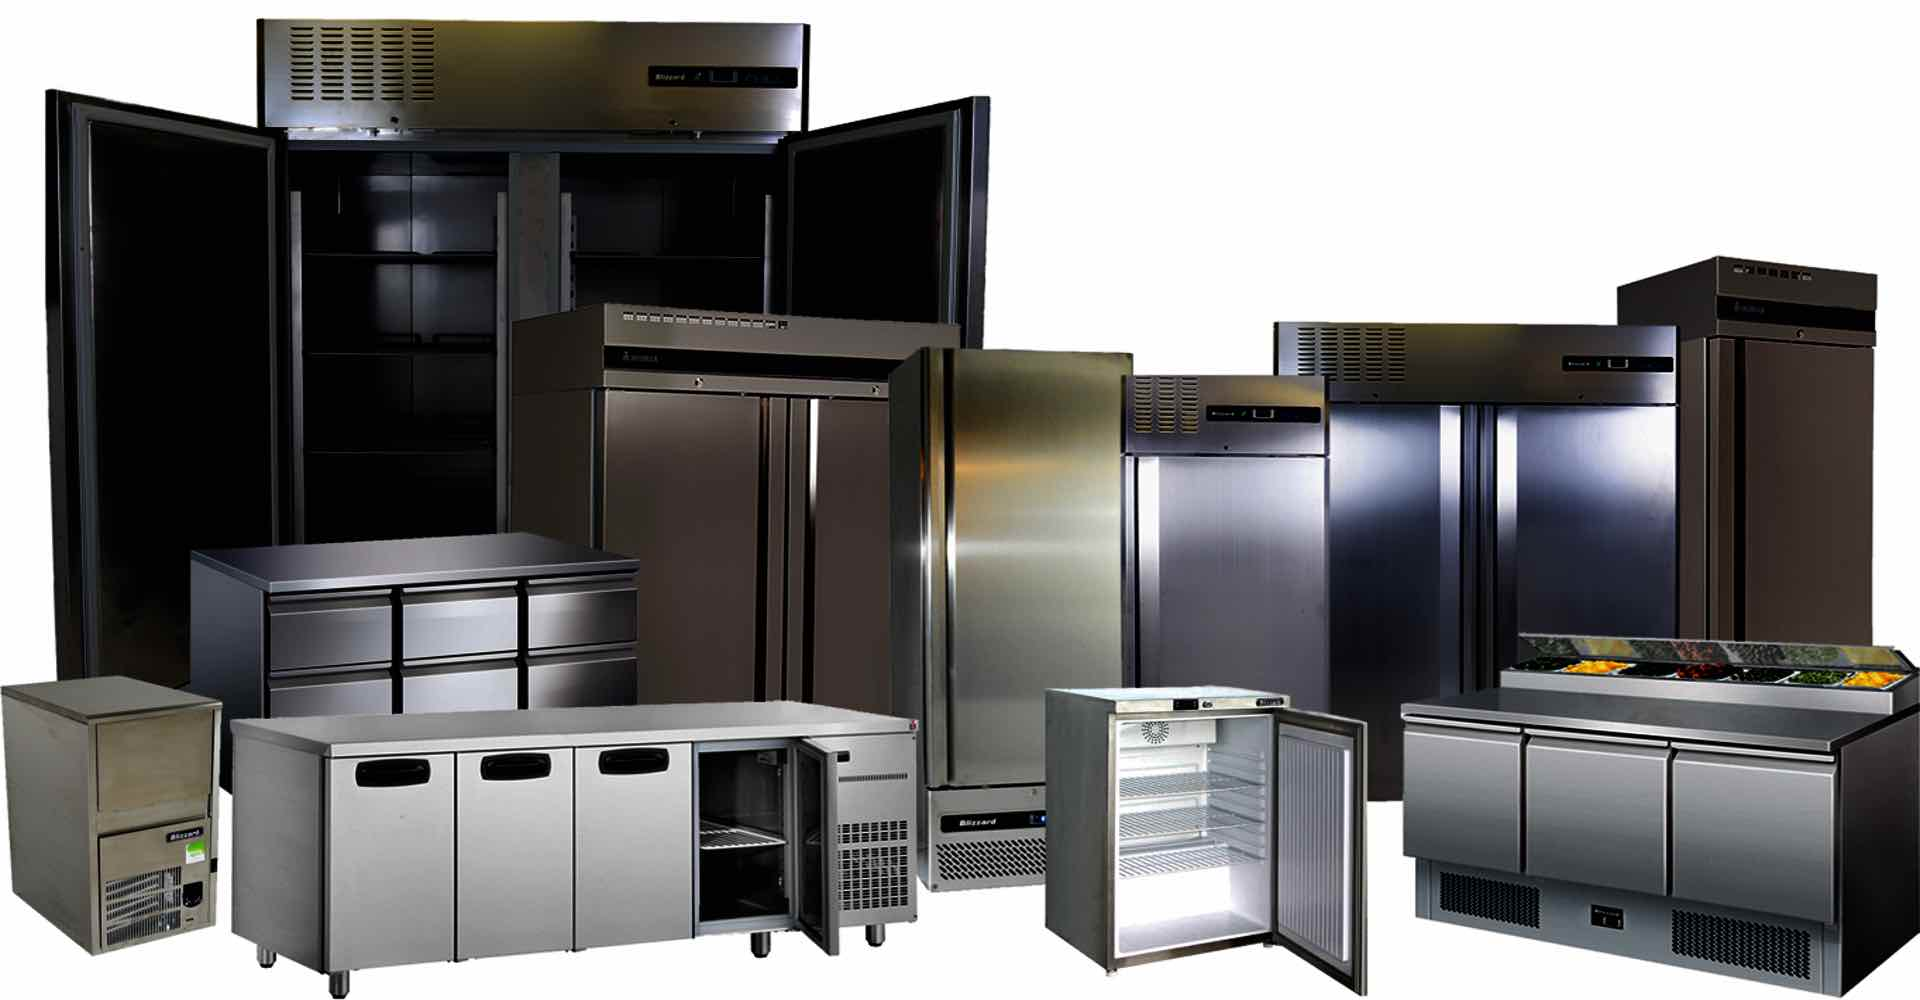 Commercial Refrigerators Cover Image